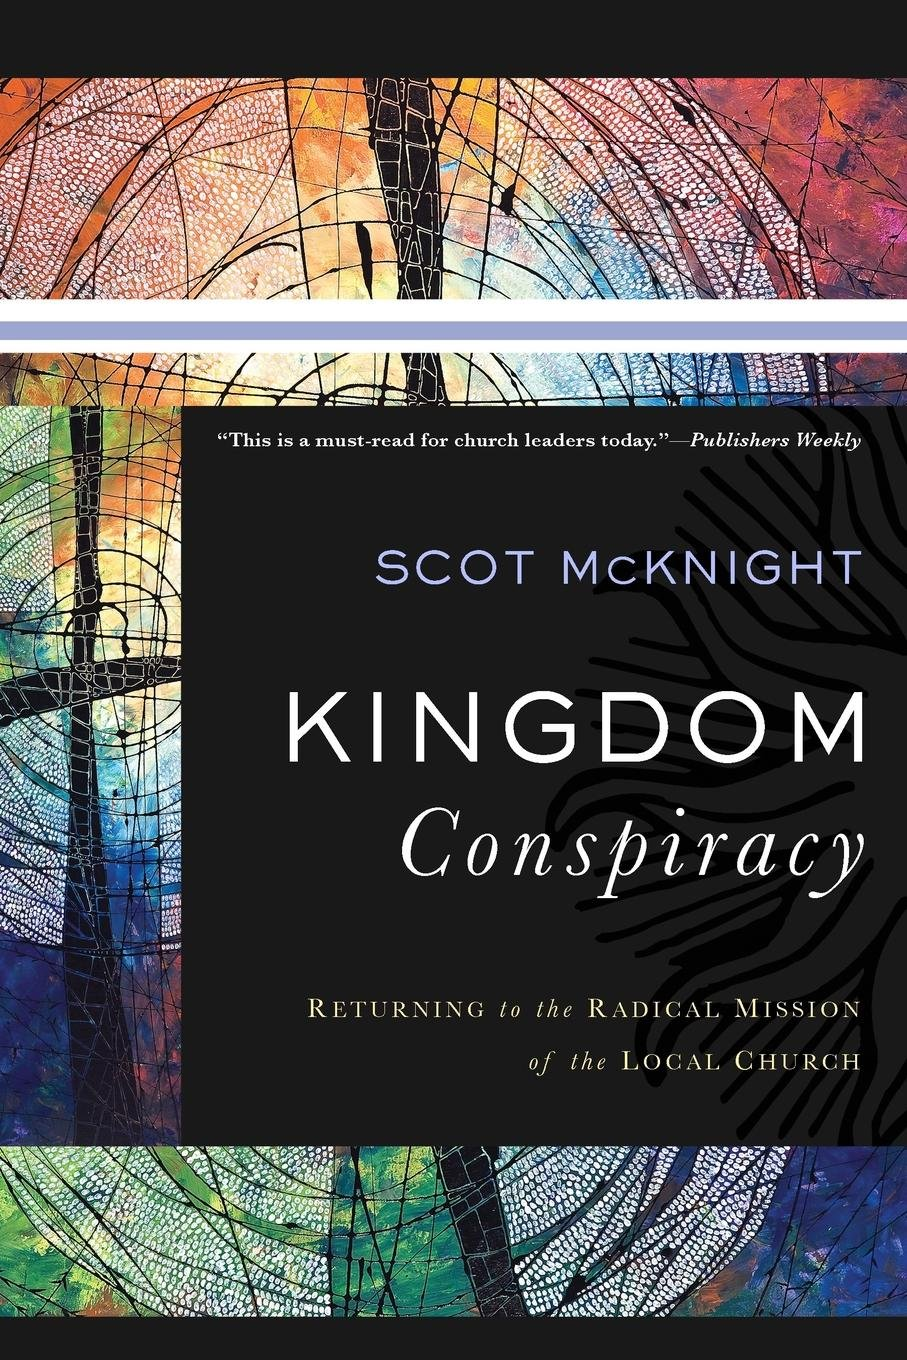 Kingdom Conspiracy: Returning to the Radical Mission of the Local Church by Scot McKnight